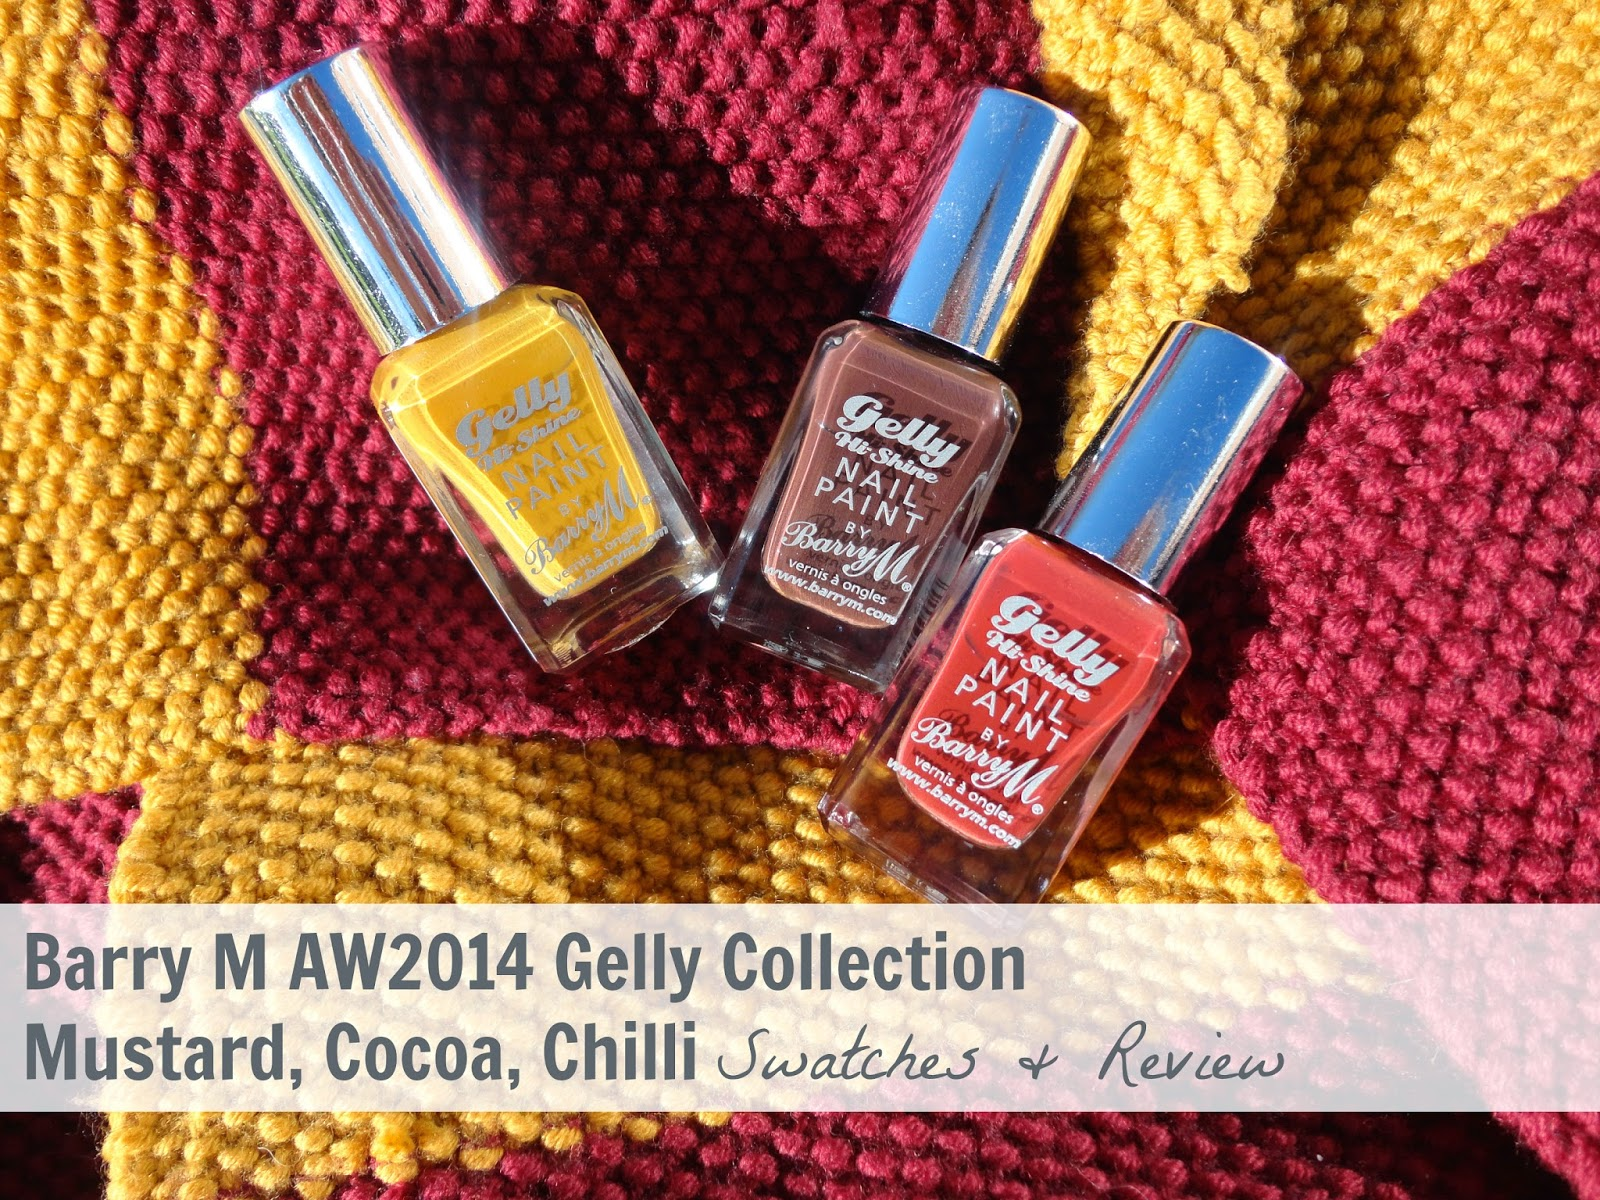 Barry M Gelly Nail Paint for Autumn Winter 2014 in Mustard, Cocoa and Chilli - swatches and review